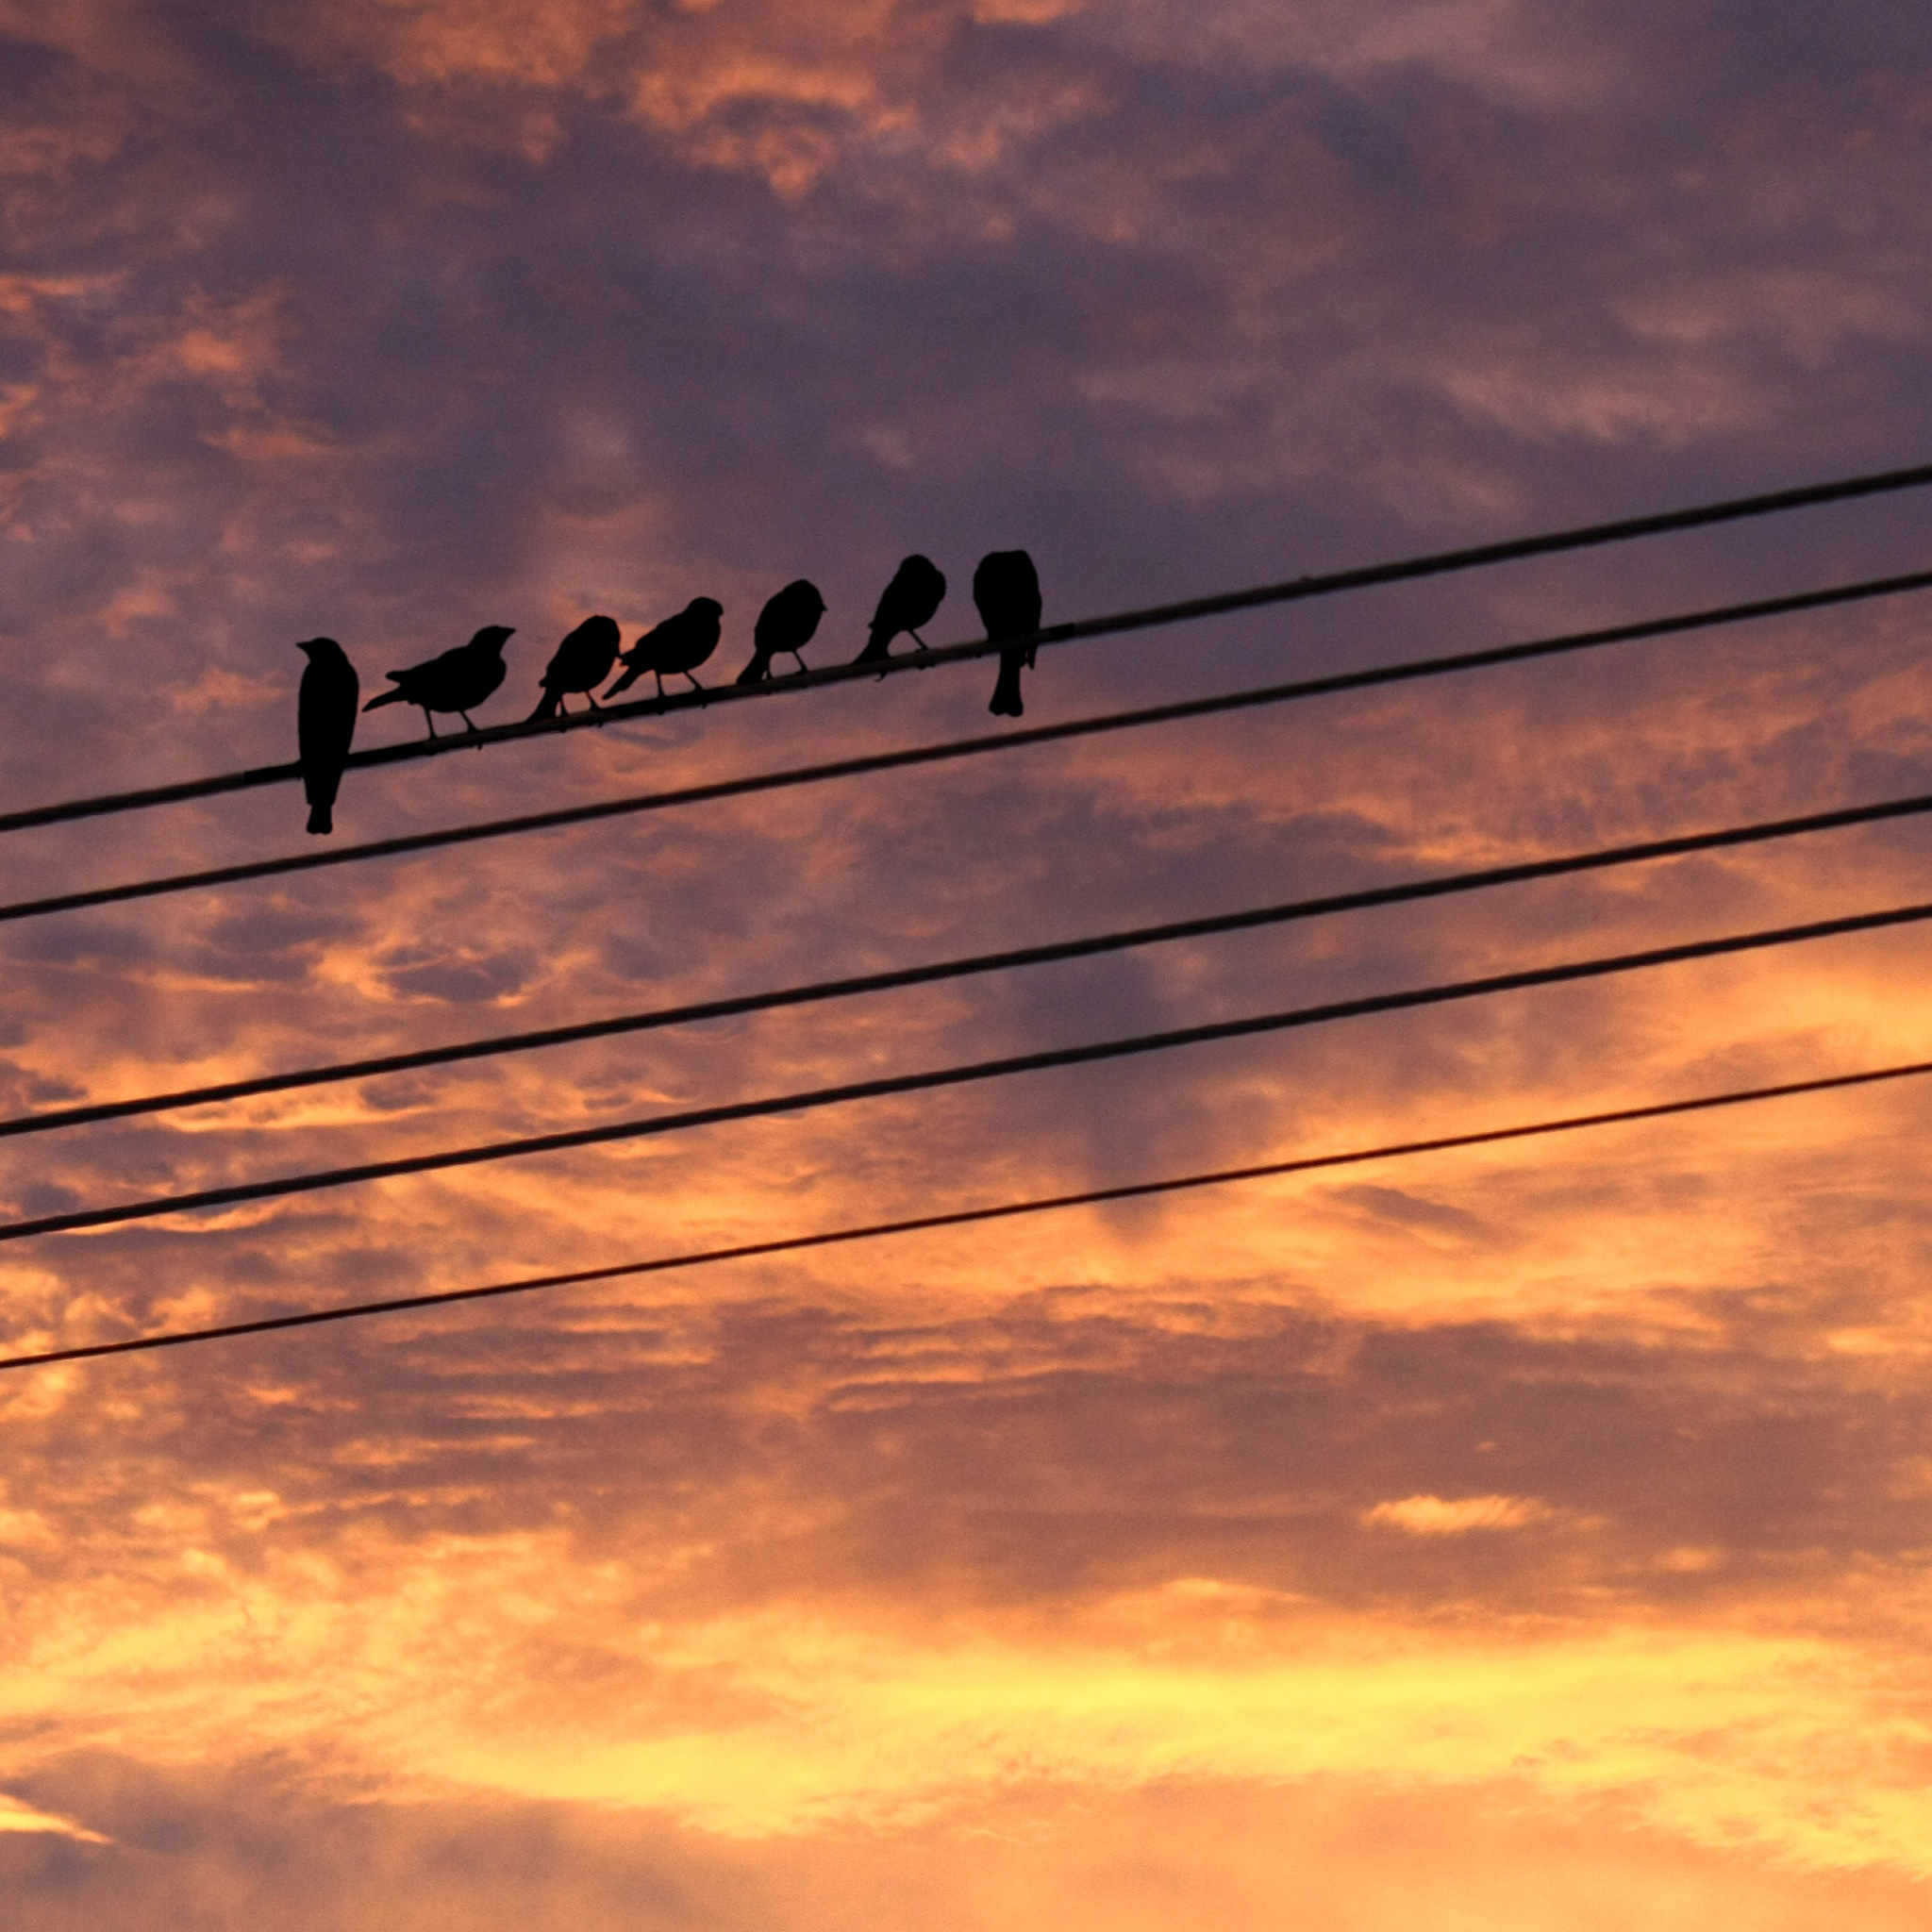 Birds on Wire by Pavol Vesely